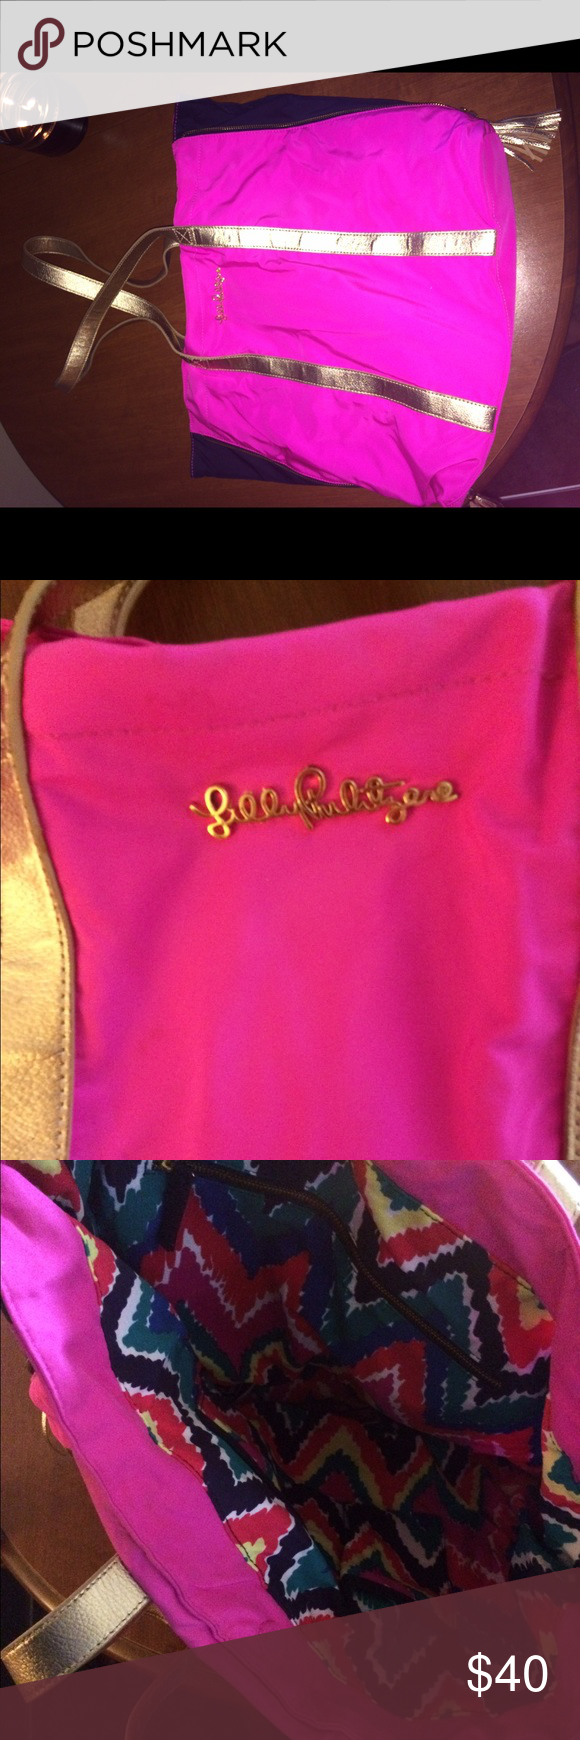 Lily Pulitzer Pink and Navy Bag! ⚡️ This is a great Lilly Pulitzer tote in hot pink, gold, and navy. There are gold tassels on the bottom of either side. I only used this once or twice so it is in great condition! Lilly Pulitzer Bags Totes